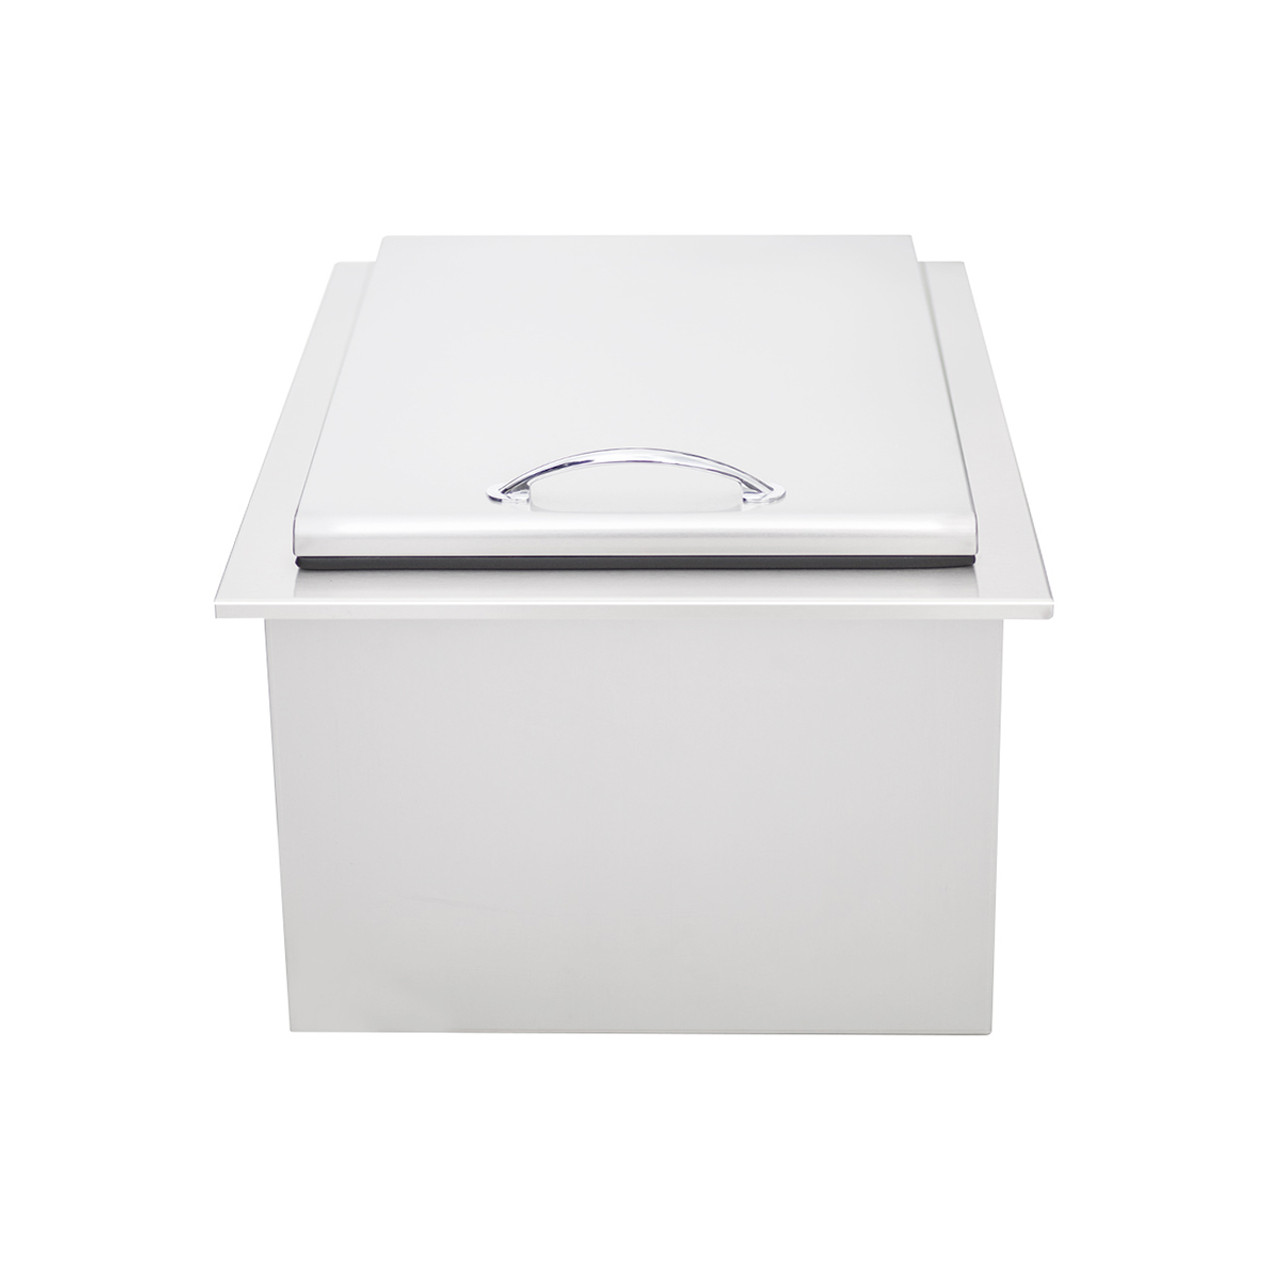 Summerset Ice Chest Small - Stainless Steal - SSIC-2